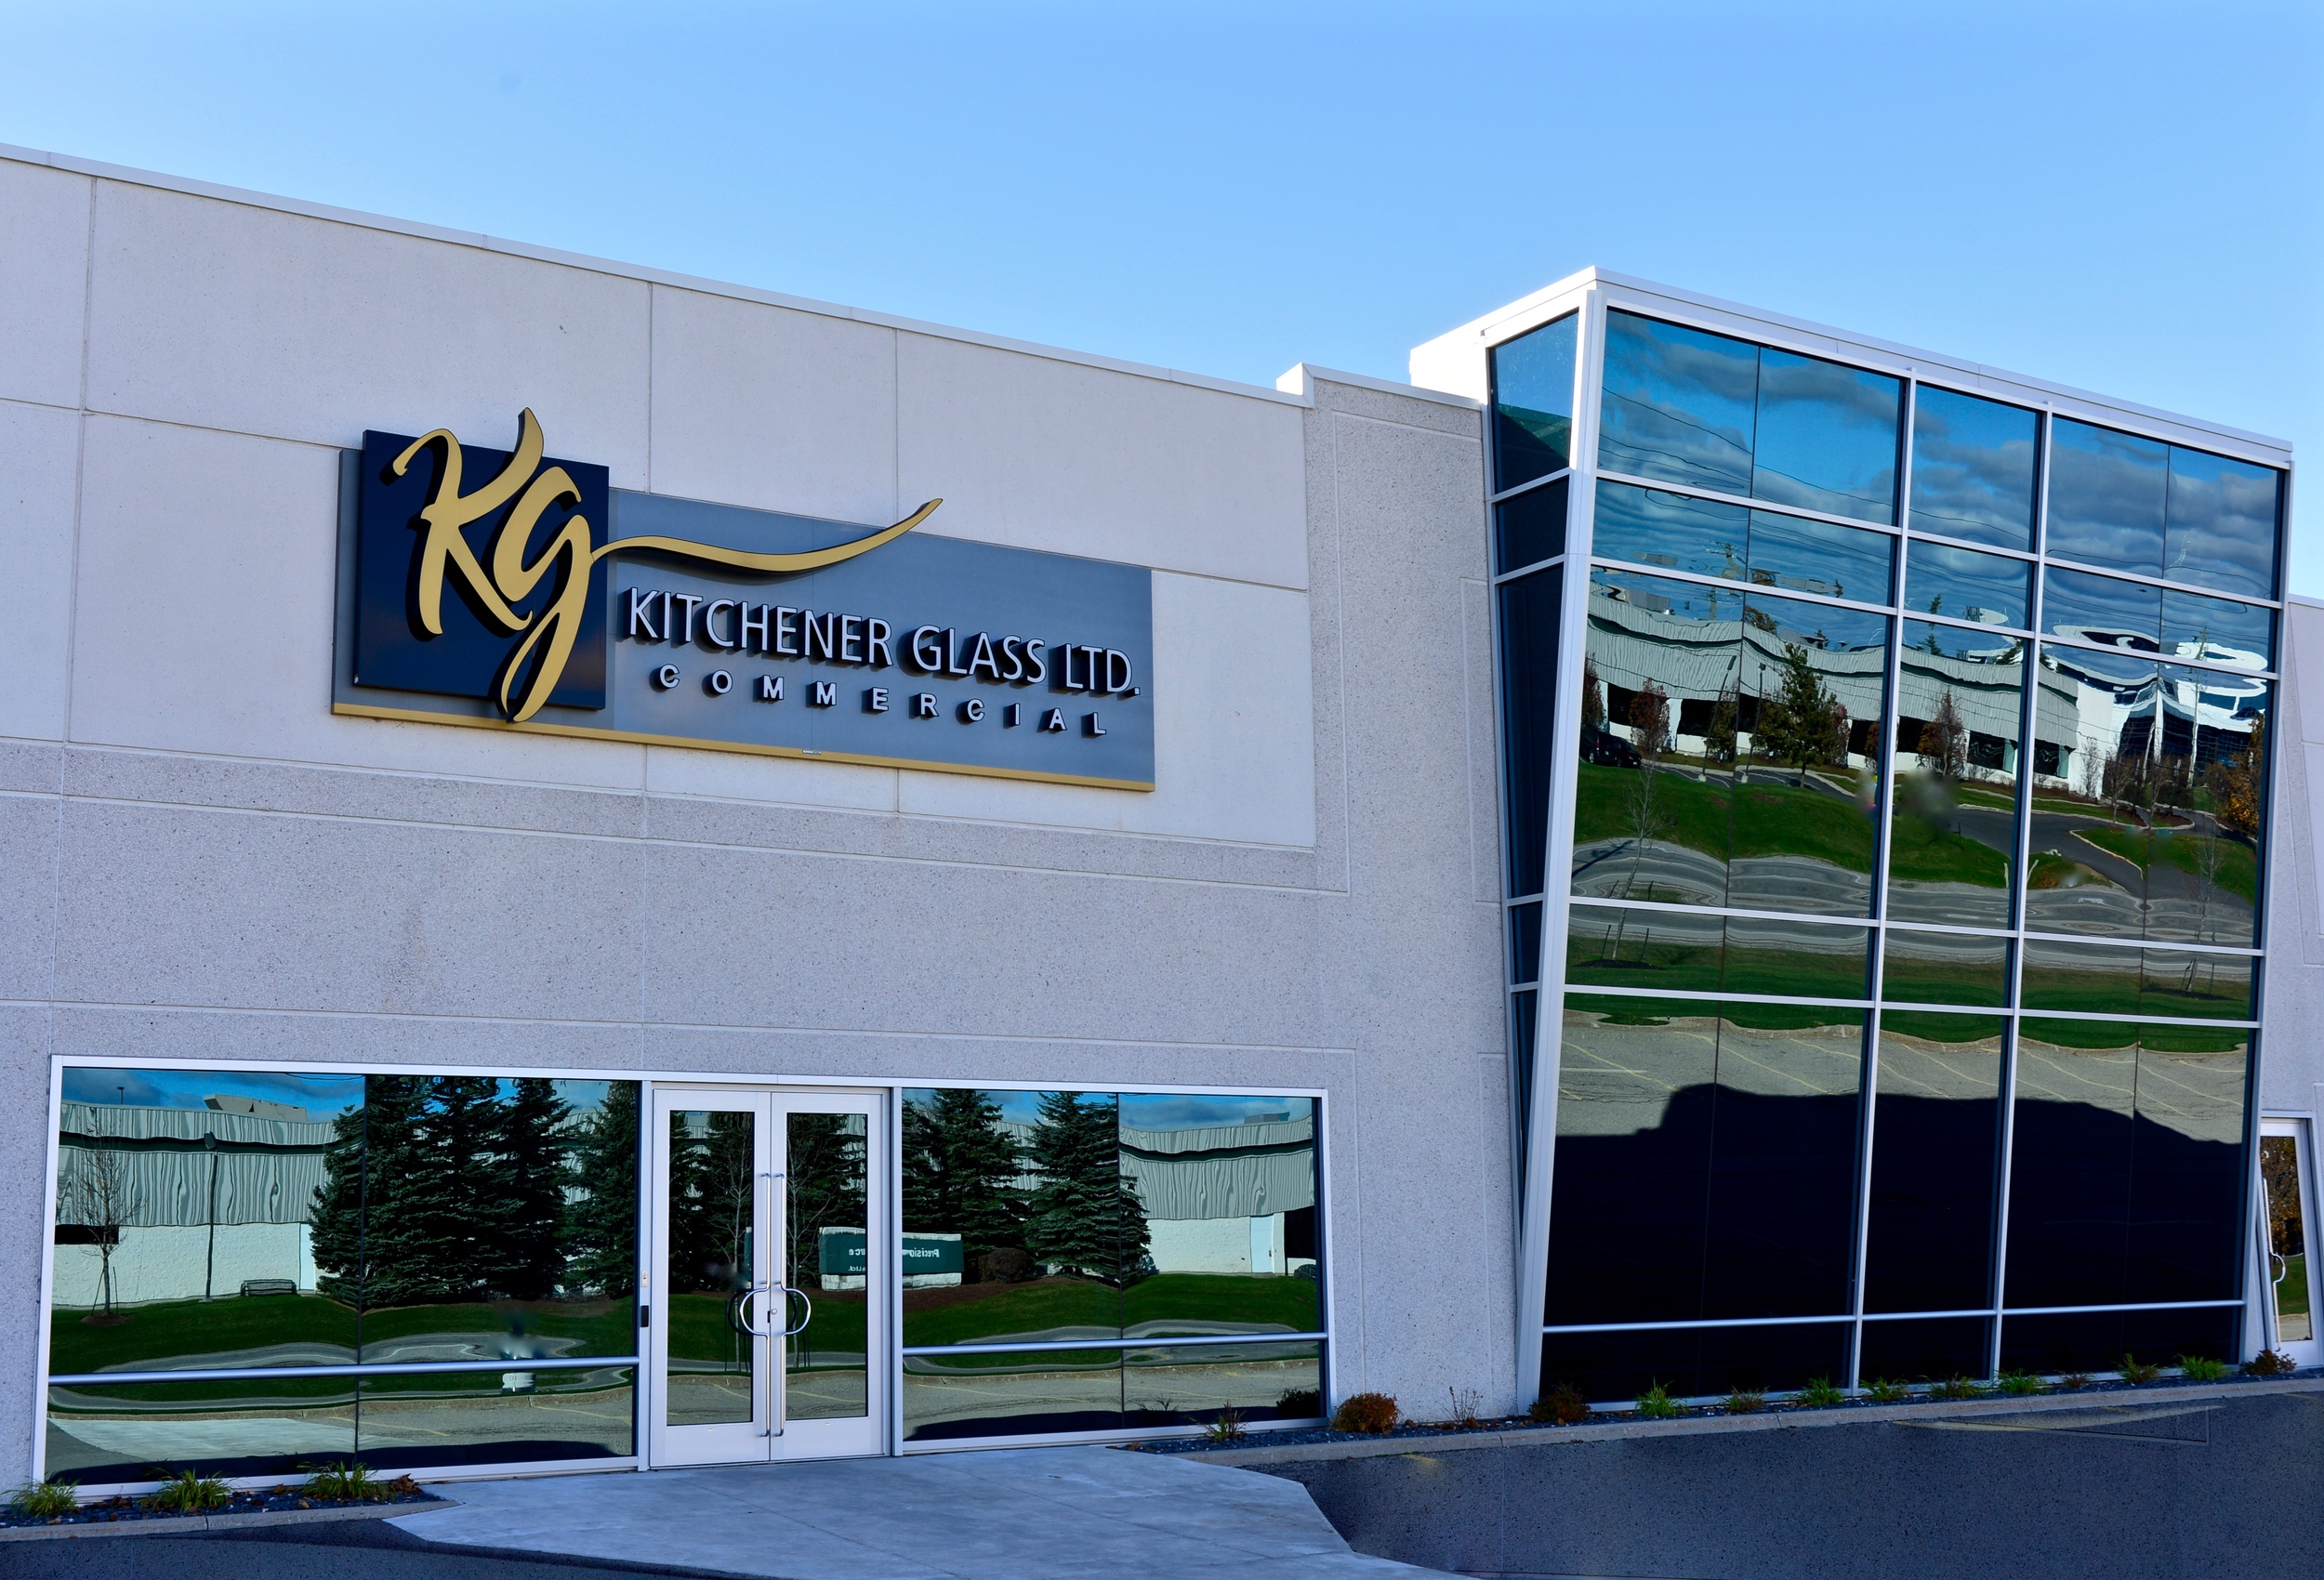 Gallery of Finished Projects — Kitchener Glass Ltd